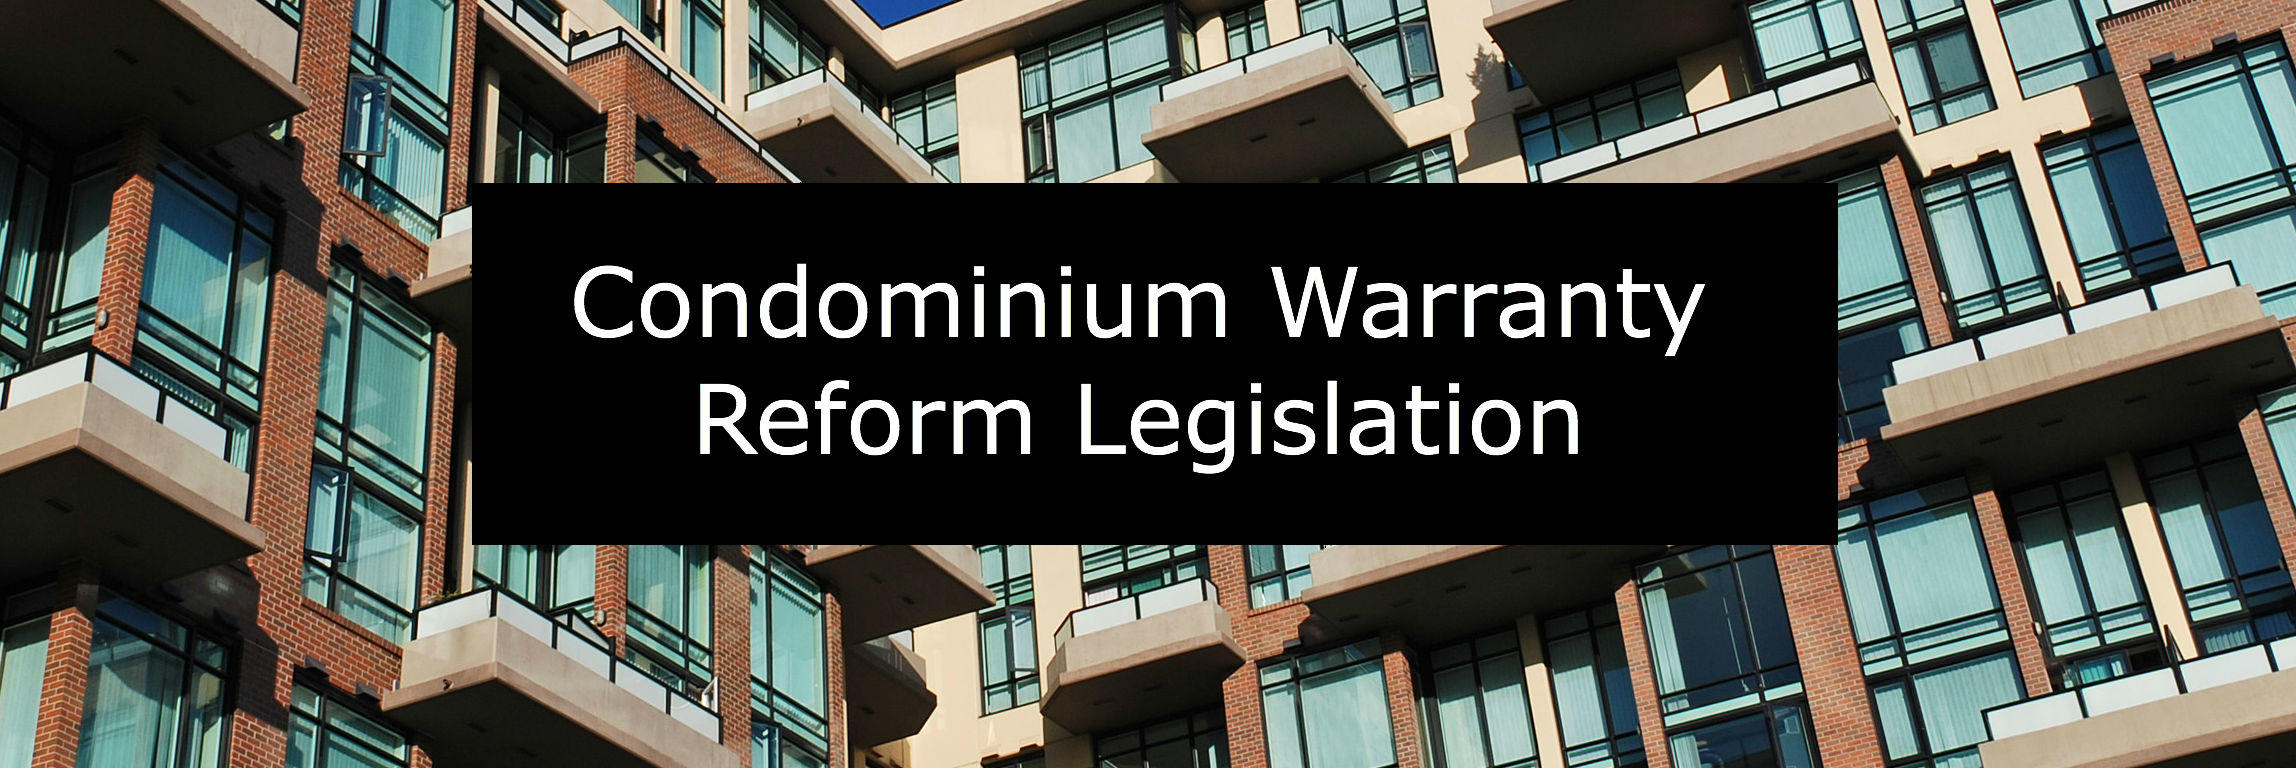 Condominium Warranty Reform Legislation Maryland needed to adress Unfair Practices used by Developers and Builders to avoid Warranty Responsibility for Construction Defects in Newly Constructed Condominiums